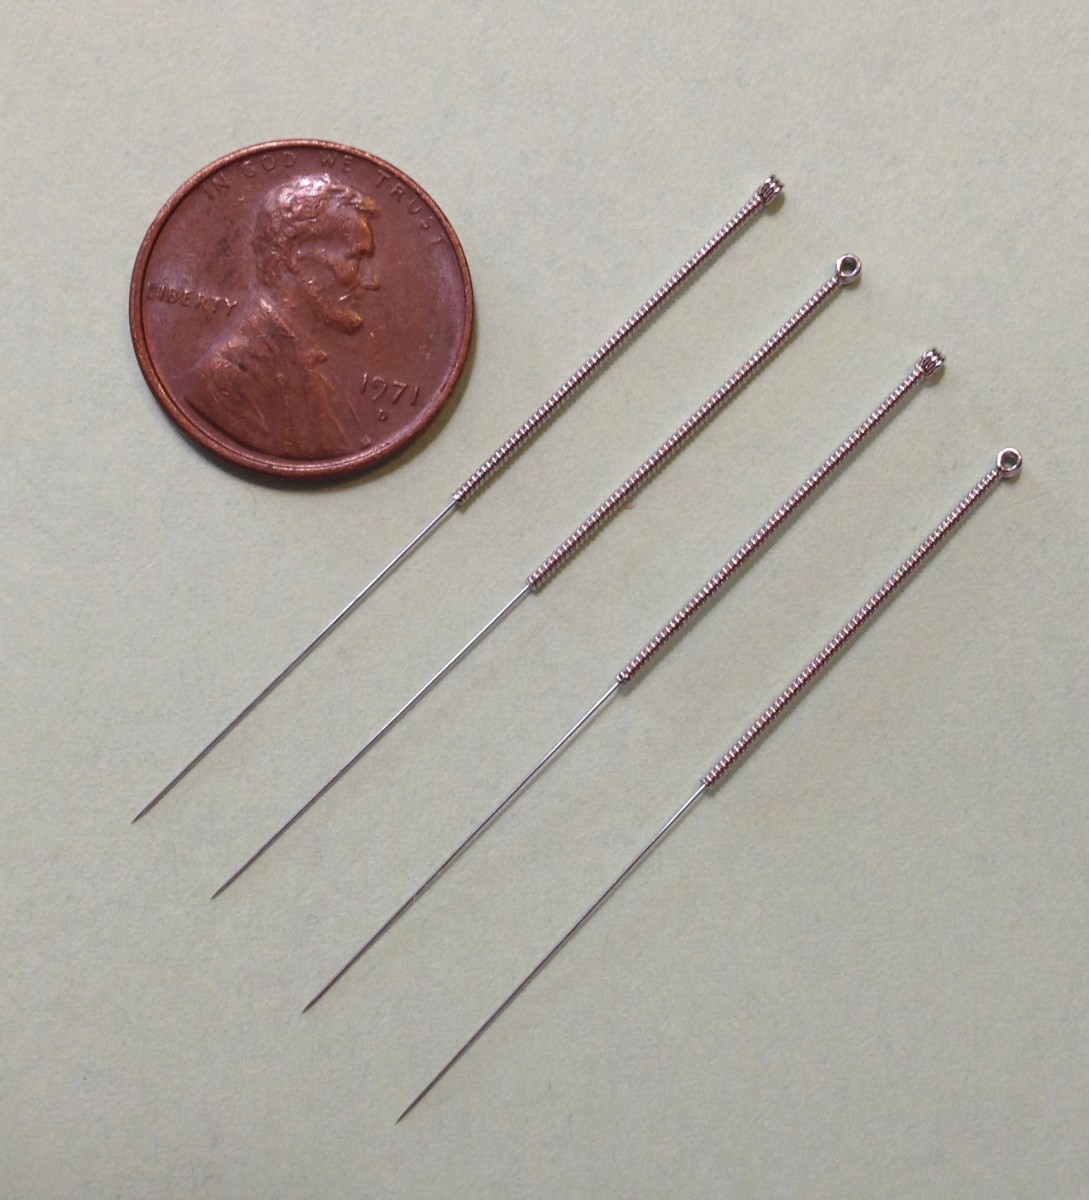 Acupuncture is a traditional Chinese medicinal technique that involves inserting small needles, shown above, into different points on the body.